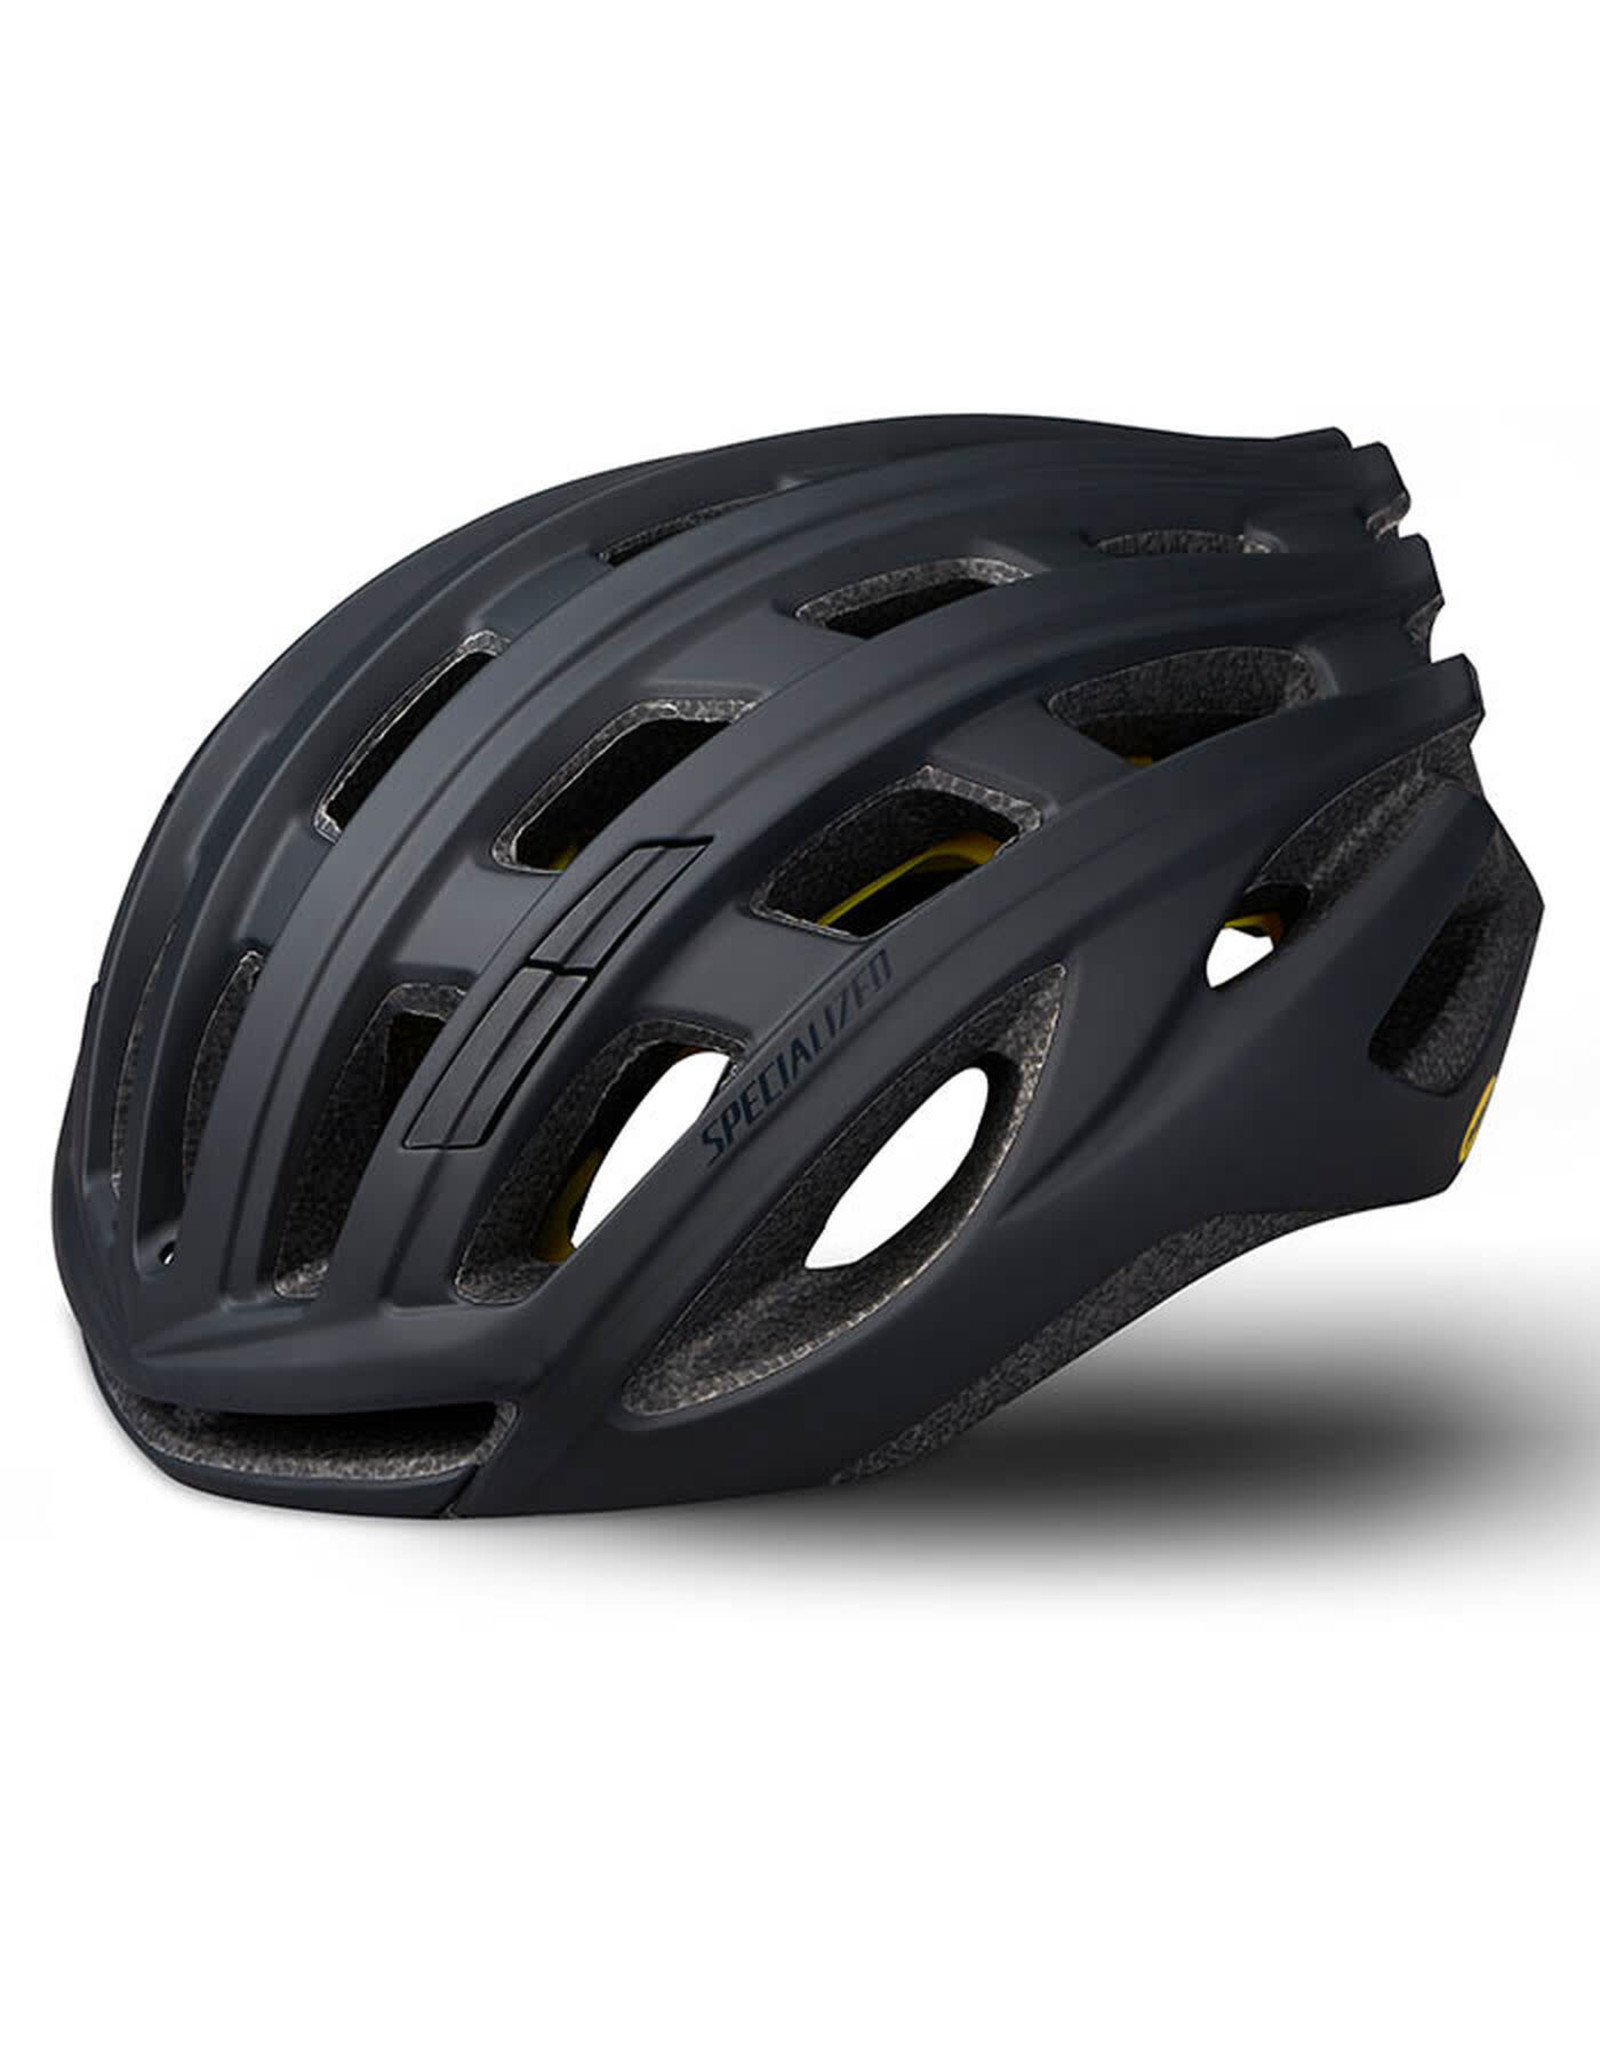 SPECIALIZED PROPERO 3 HLMT ANGI MIPS CPSC BLK L